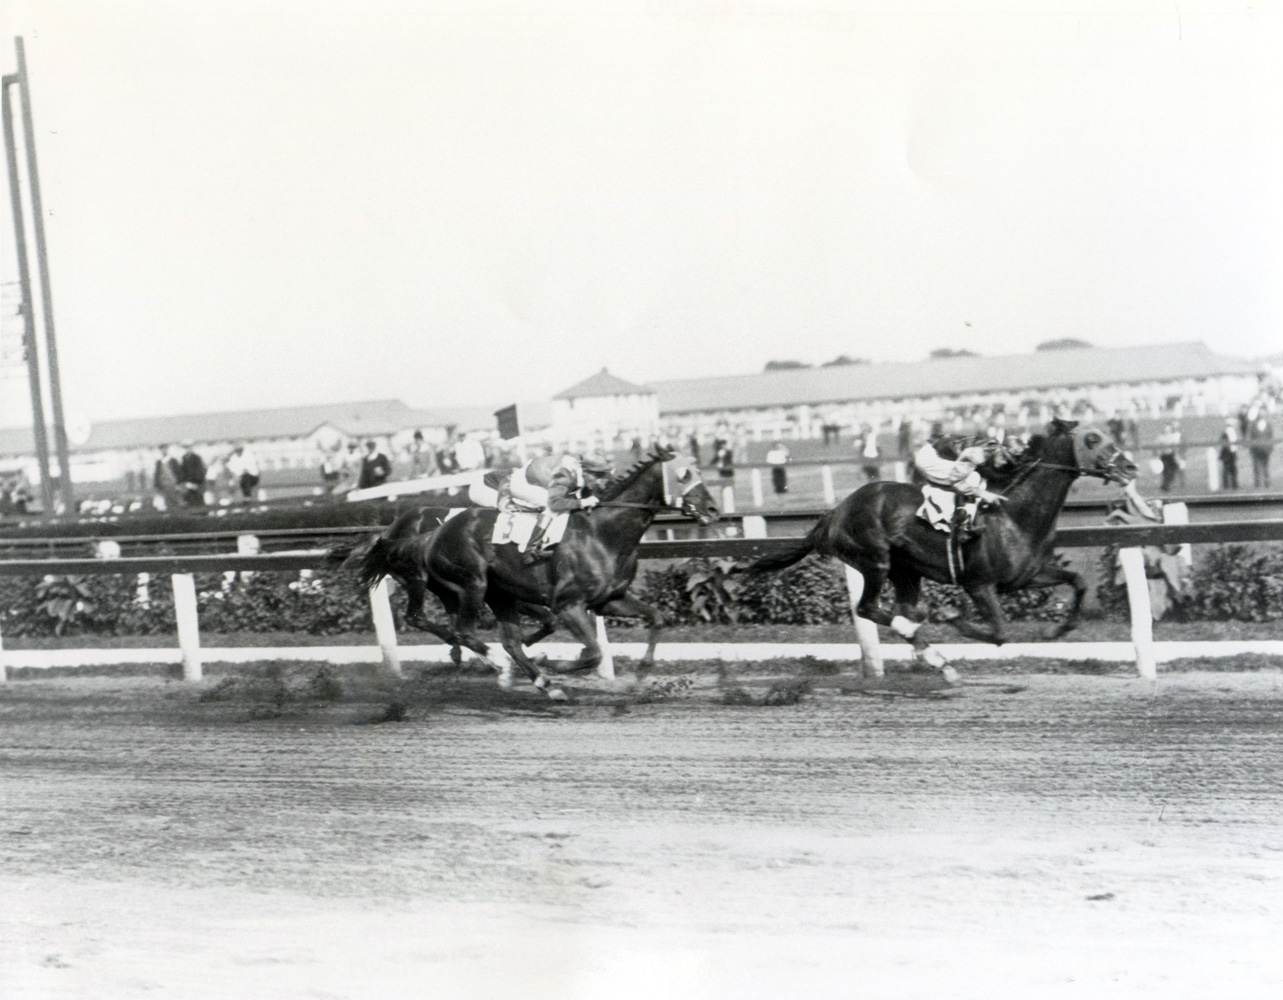 Frank Coltiletti and Sun Beau winning the 1929 Aqueduct Handicap at Aqueduct (Keeneland Library Cook Collection/Museum Collection)